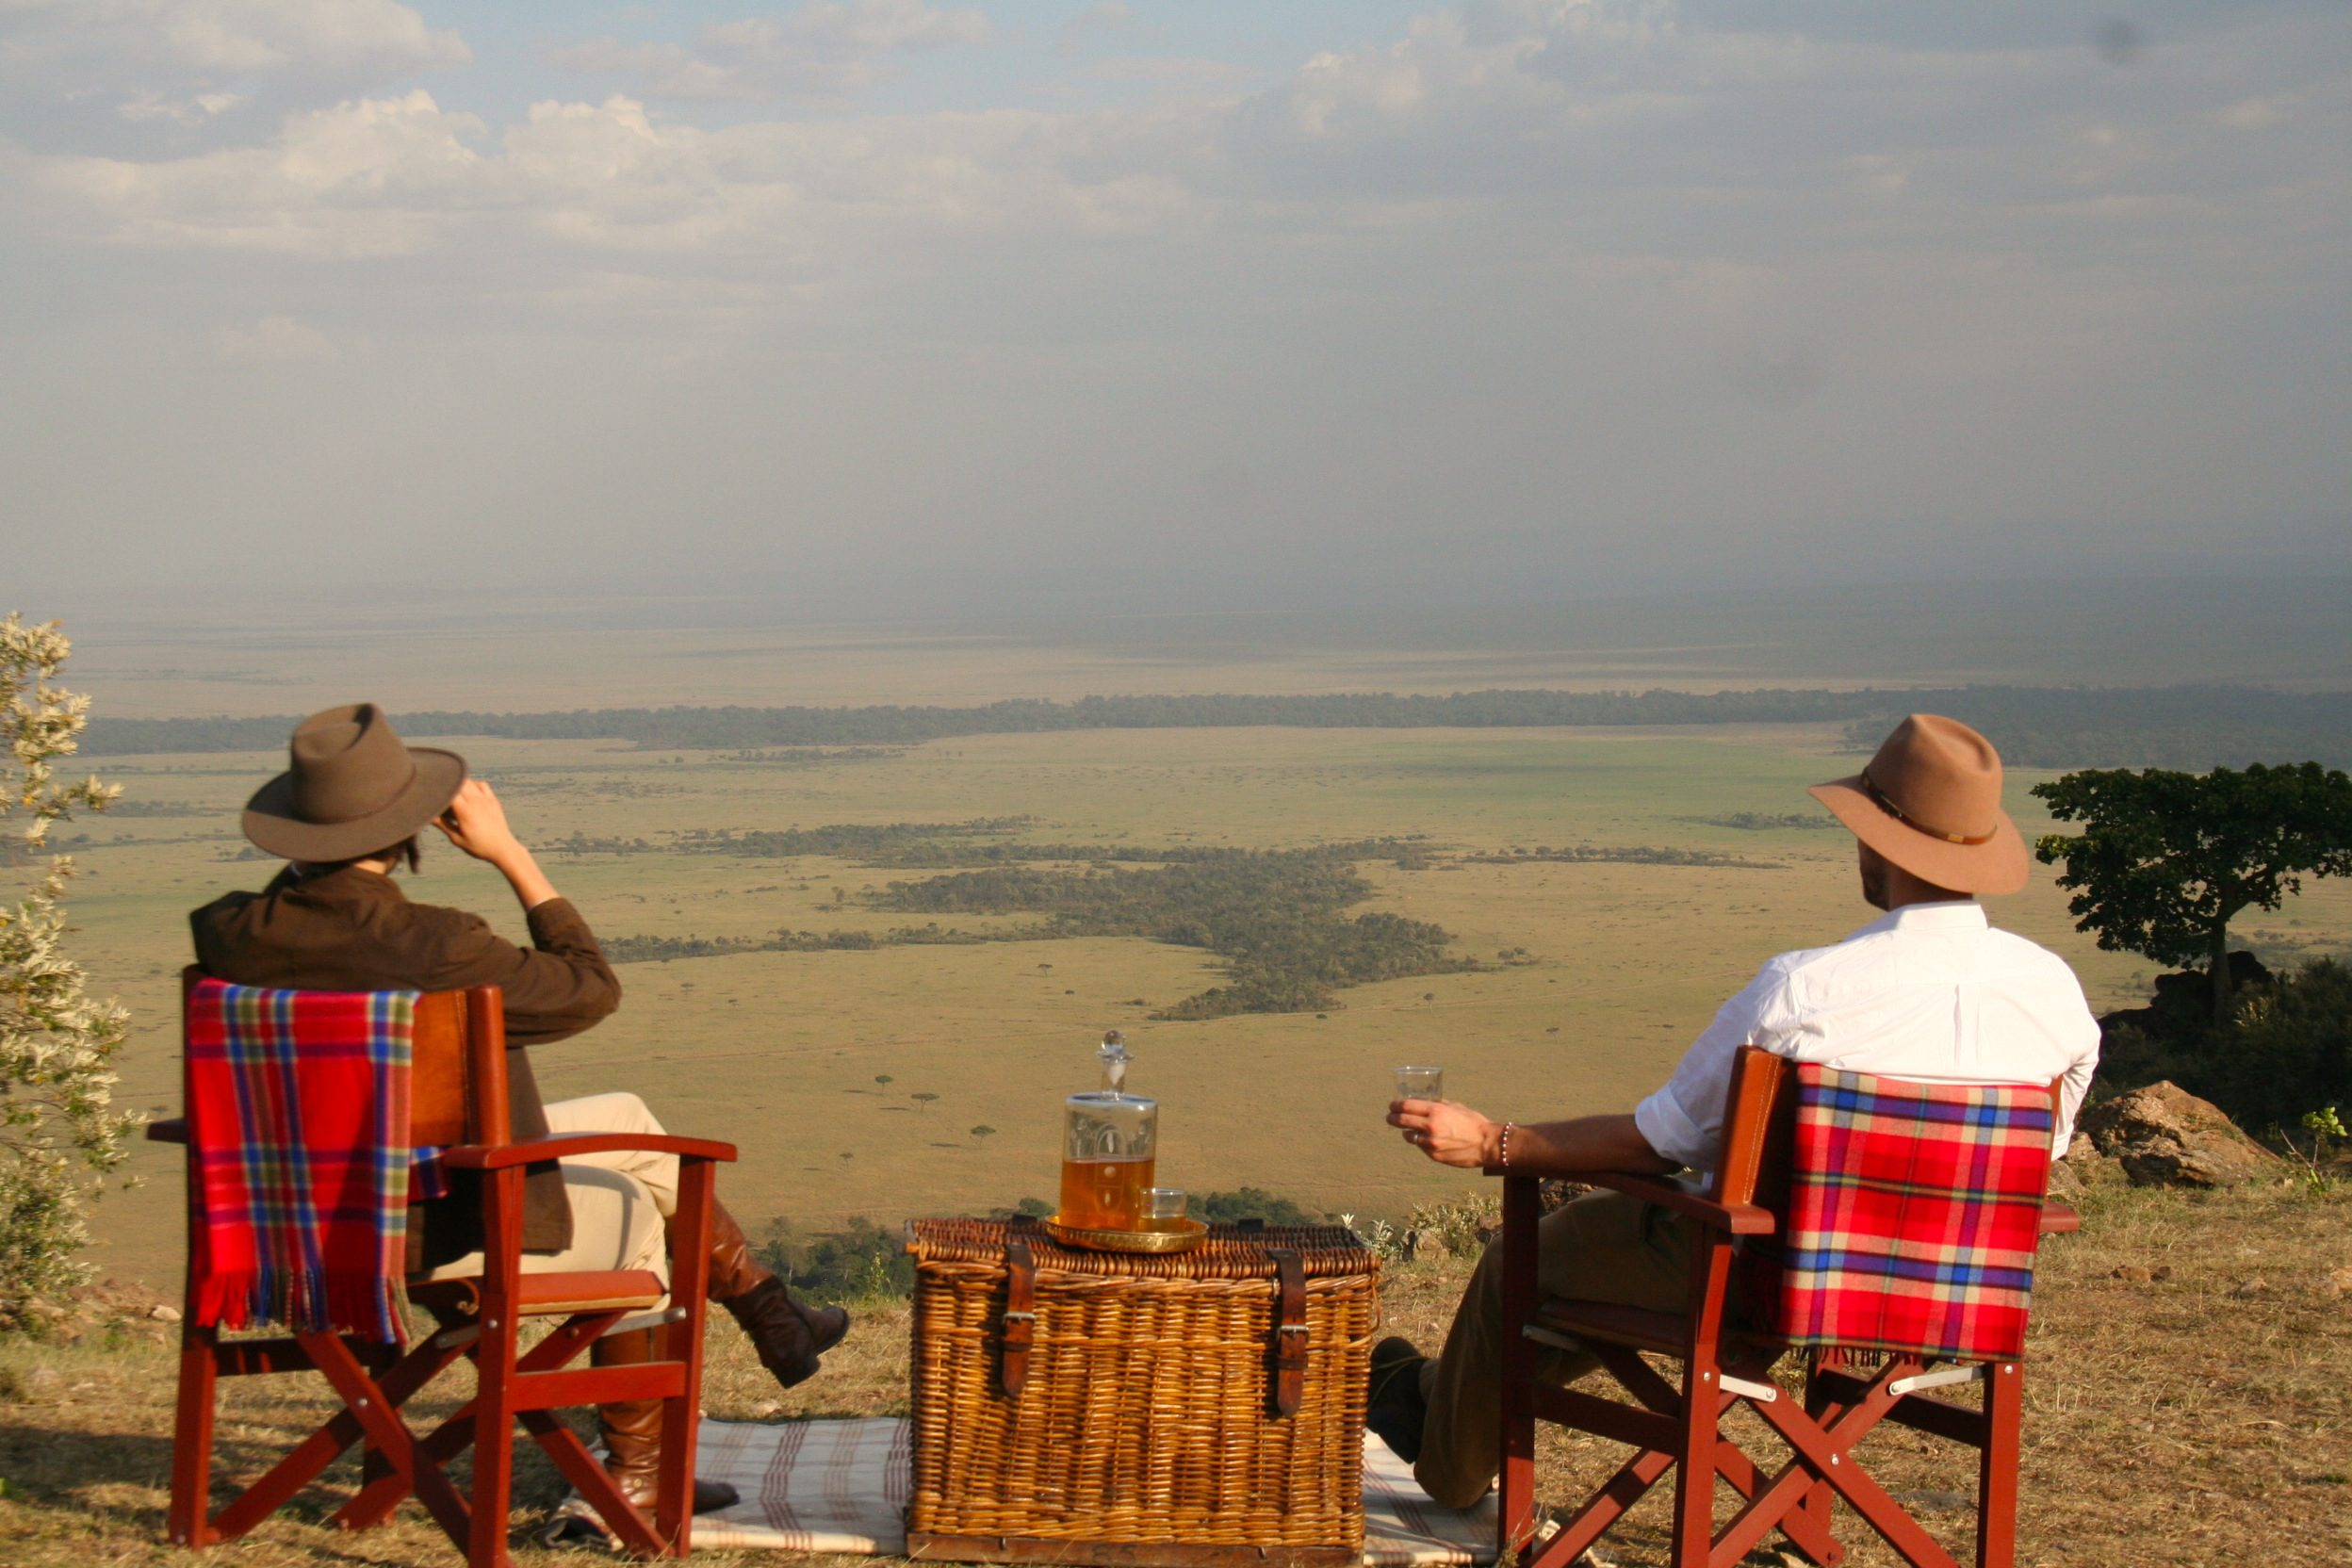 two people sit in chairs with blankets strewn over the back and enjoy a picnic overlooking the Maasai Mara